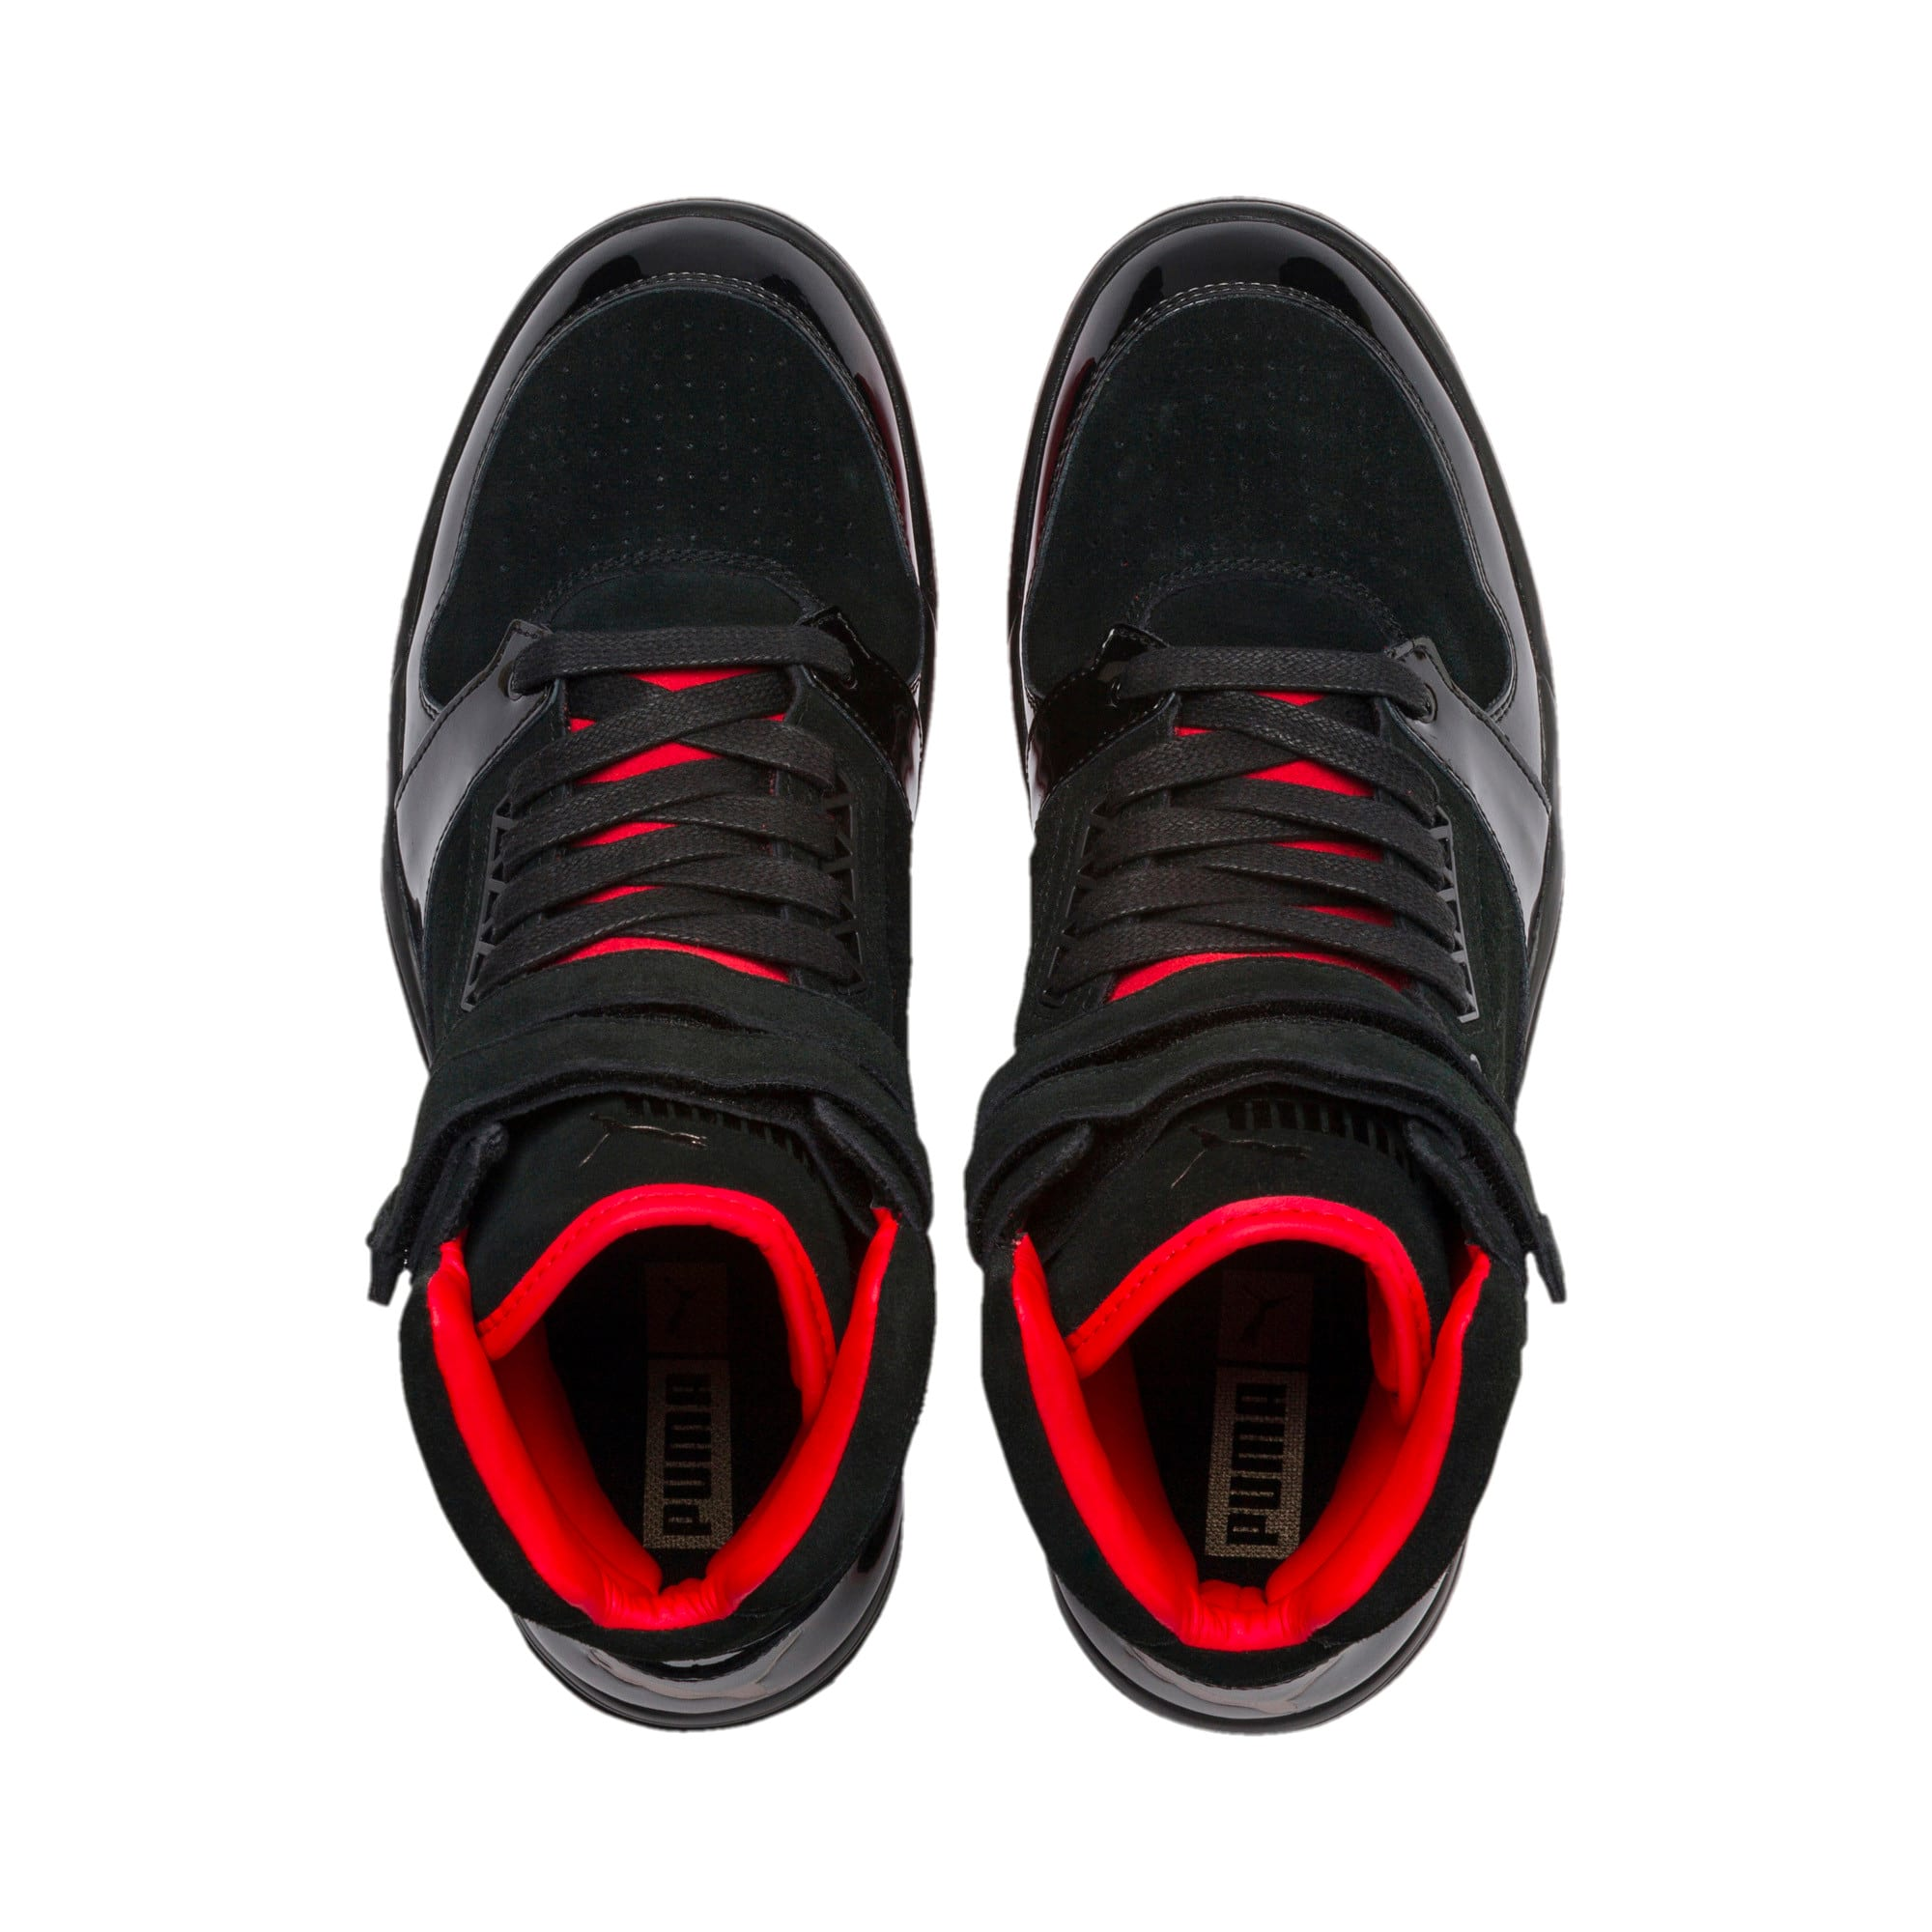 Thumbnail 7 of Palace Guard Red Carpet Mid-Cut Basketball Shoes, Puma Black-Risk Red-Bronze, medium